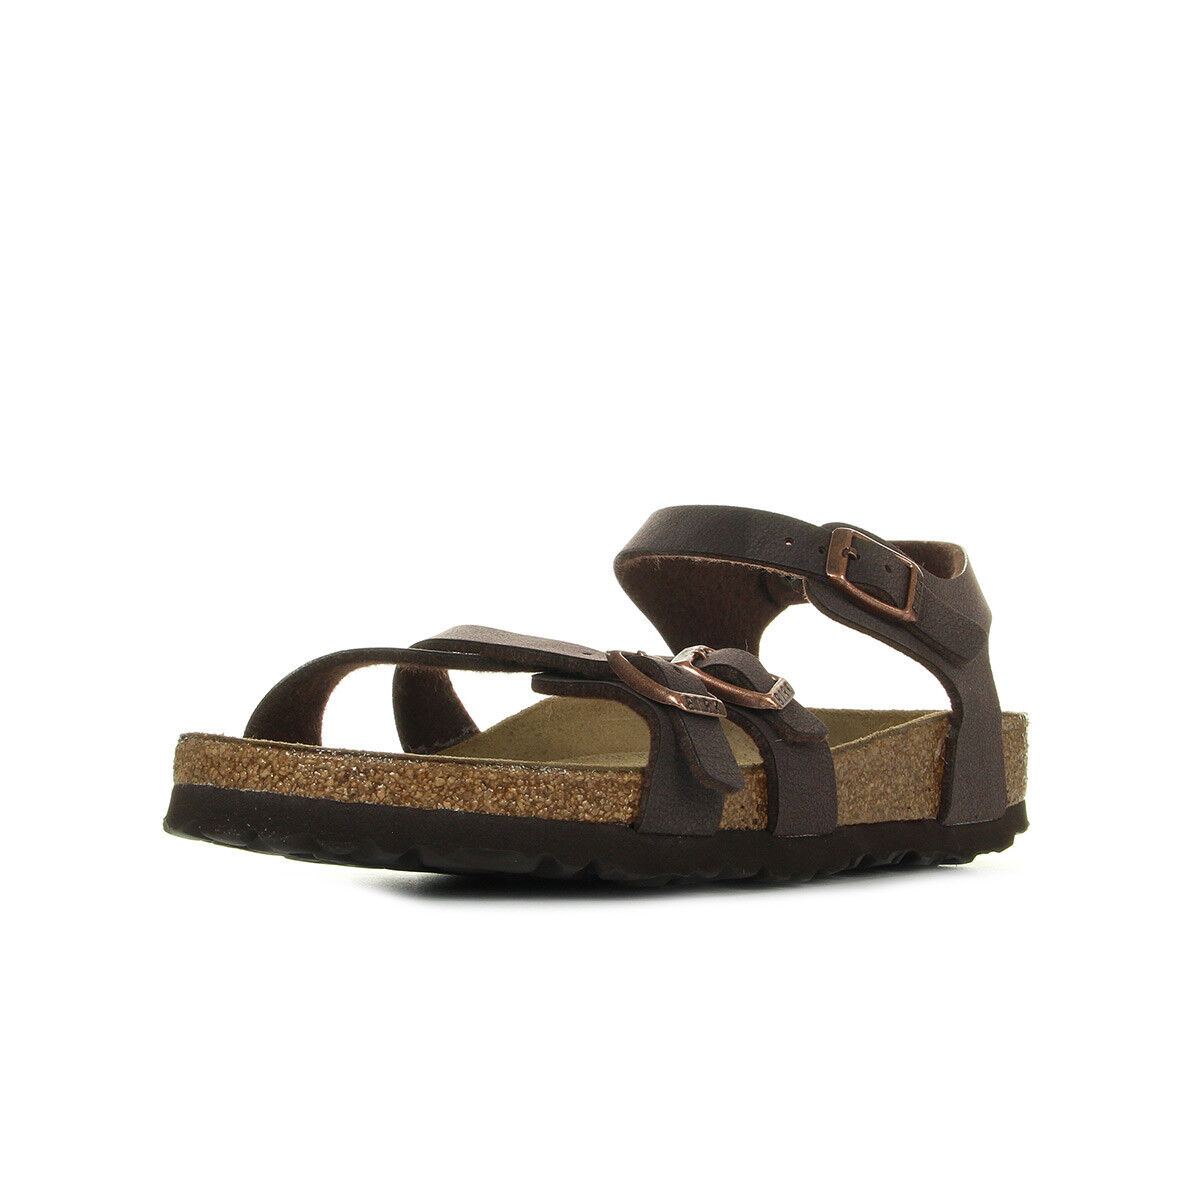 NIB Jack Rogers Hollis Leather Thong Style Sandals in Geranium/Gold